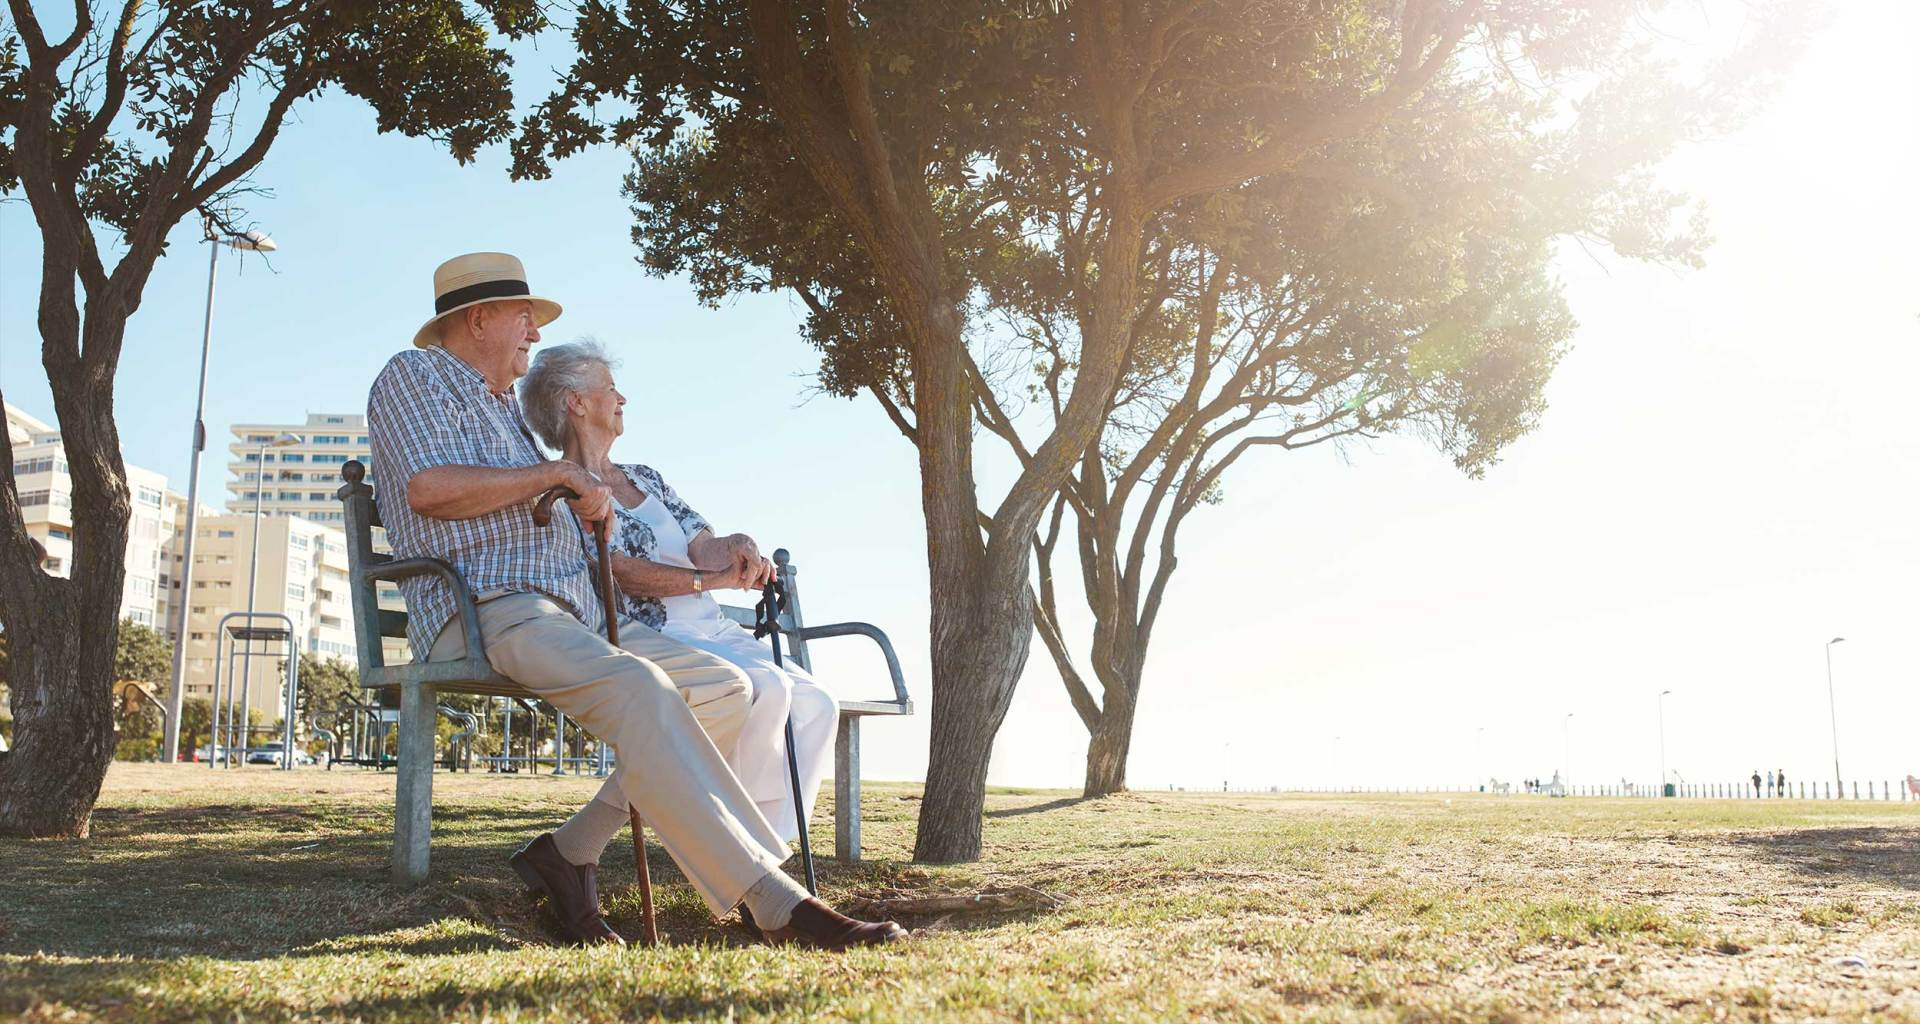 Retired couple relaxing in the park.